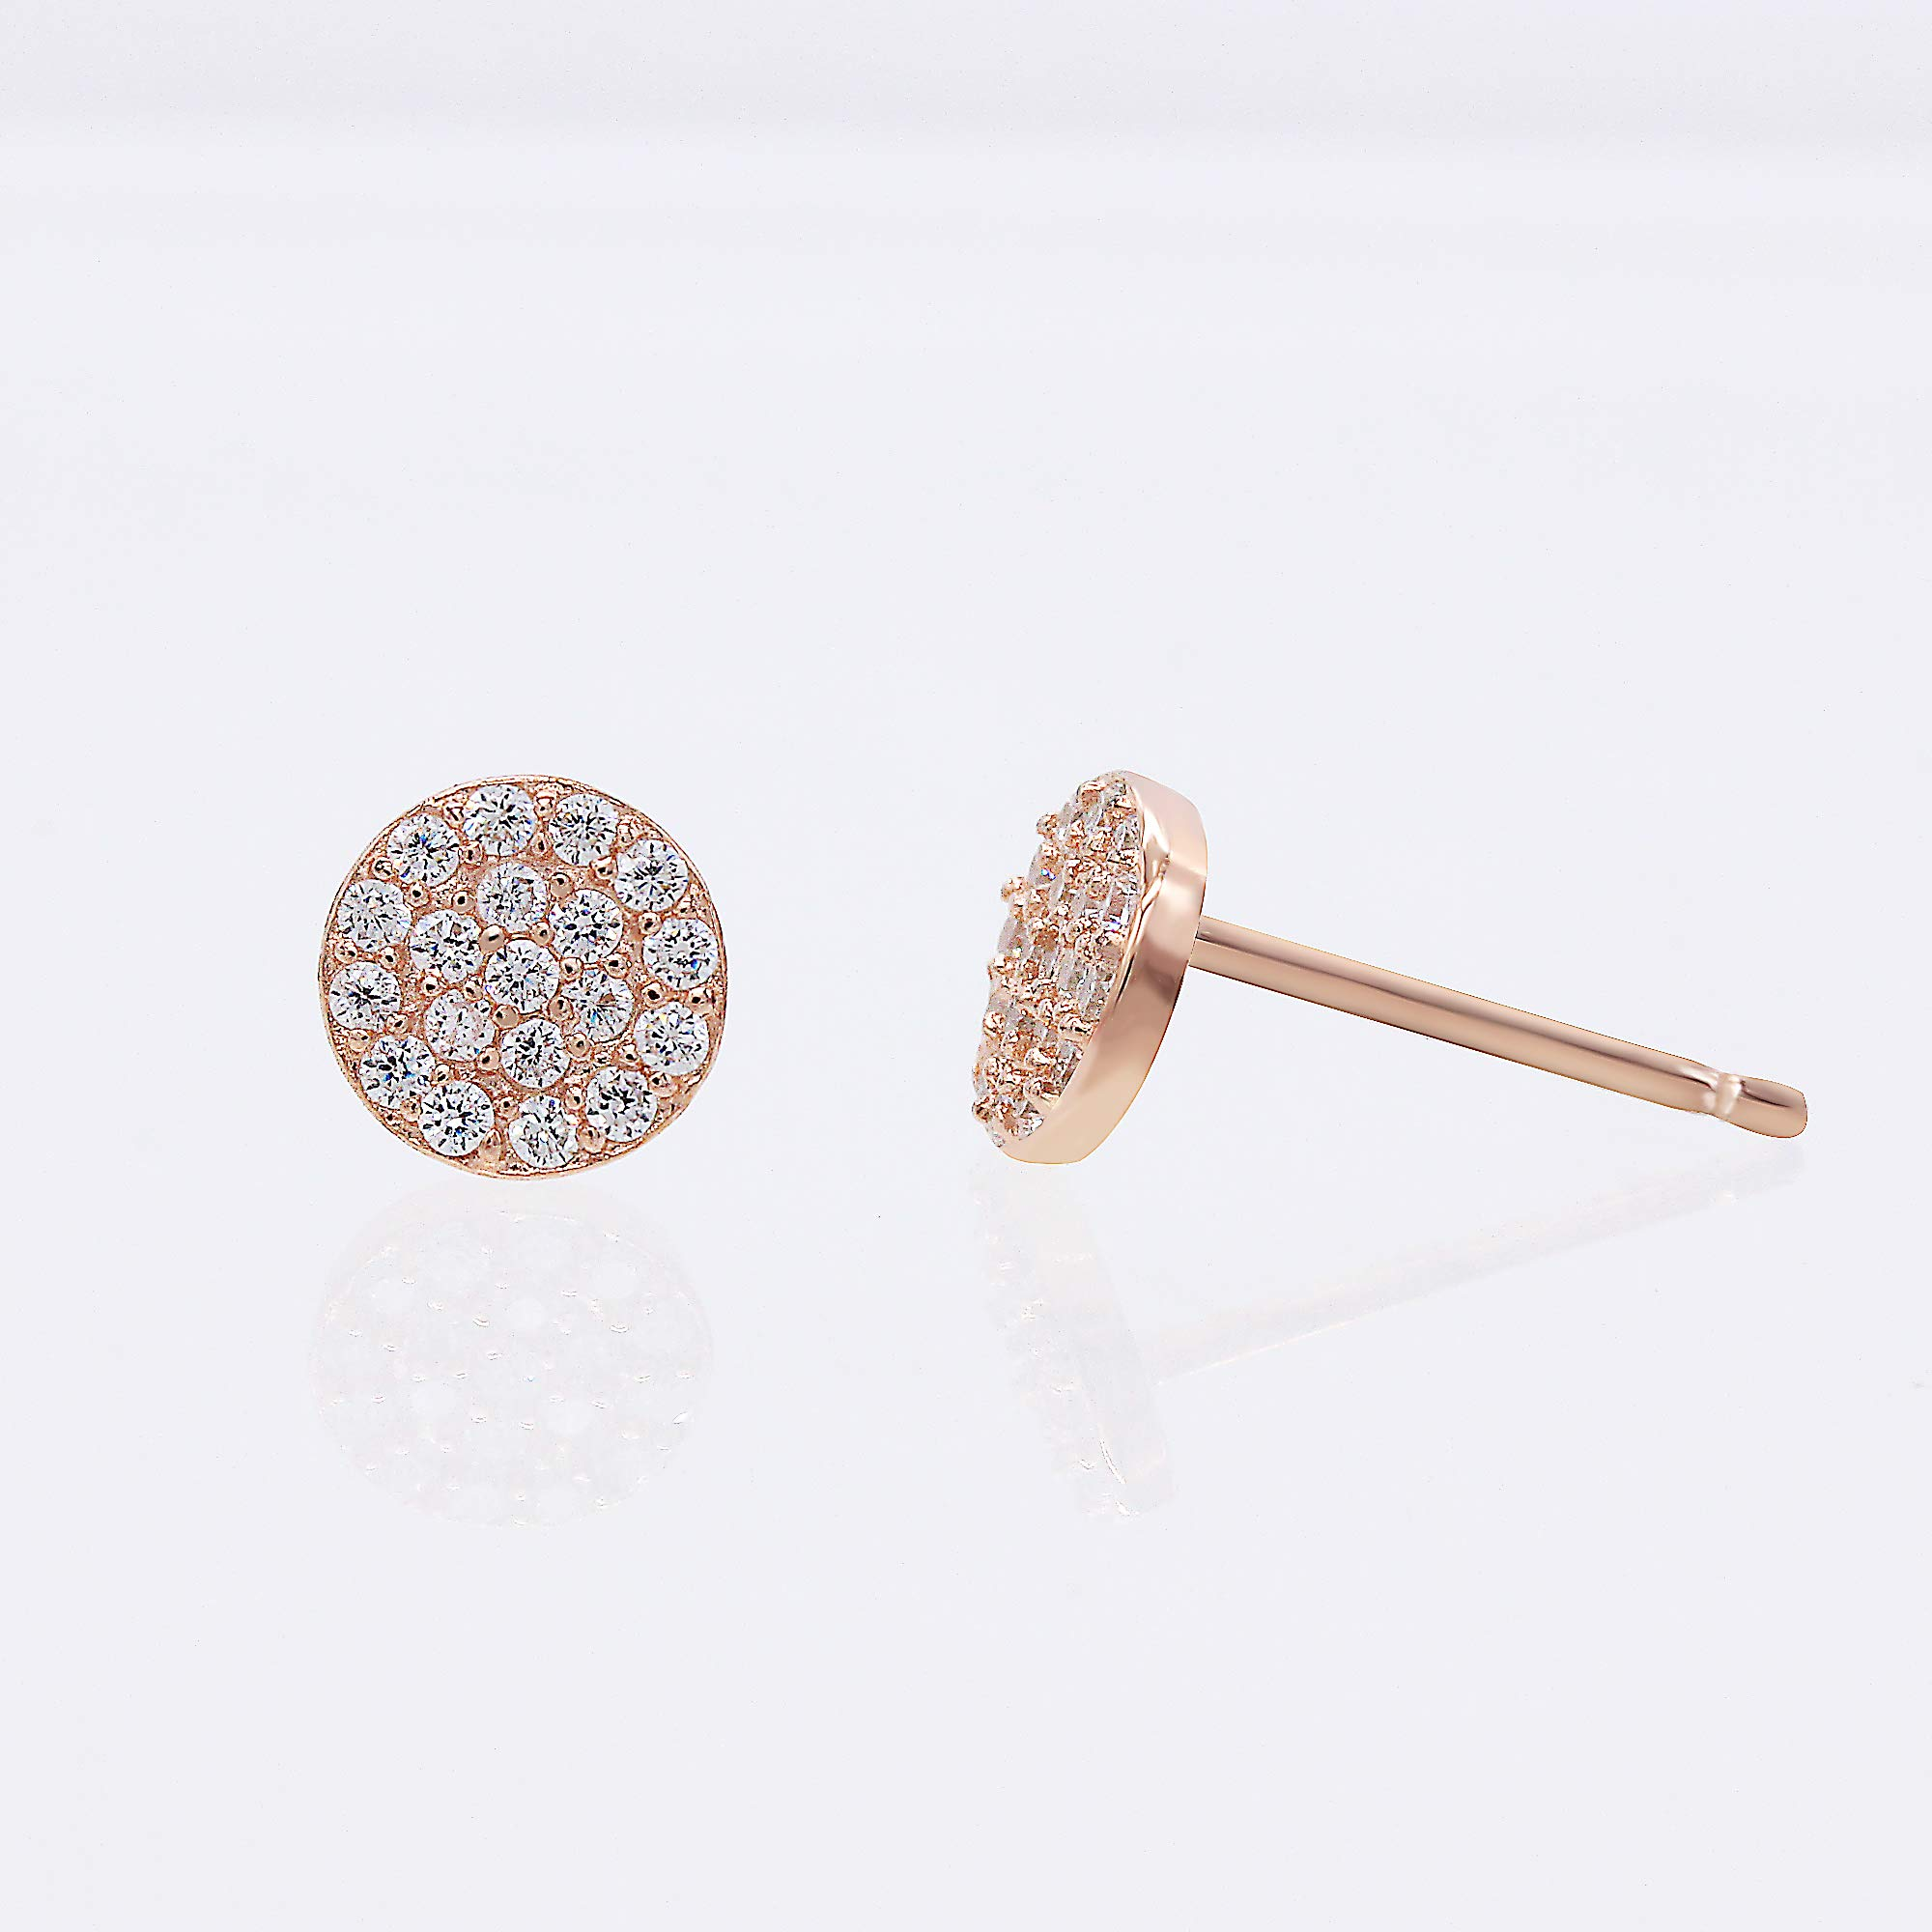 14k Rose Gold-Plated Sterling Silver Cubic Zirconia Mini Circle Pave Disc Stud Earrings 6mm Diameter